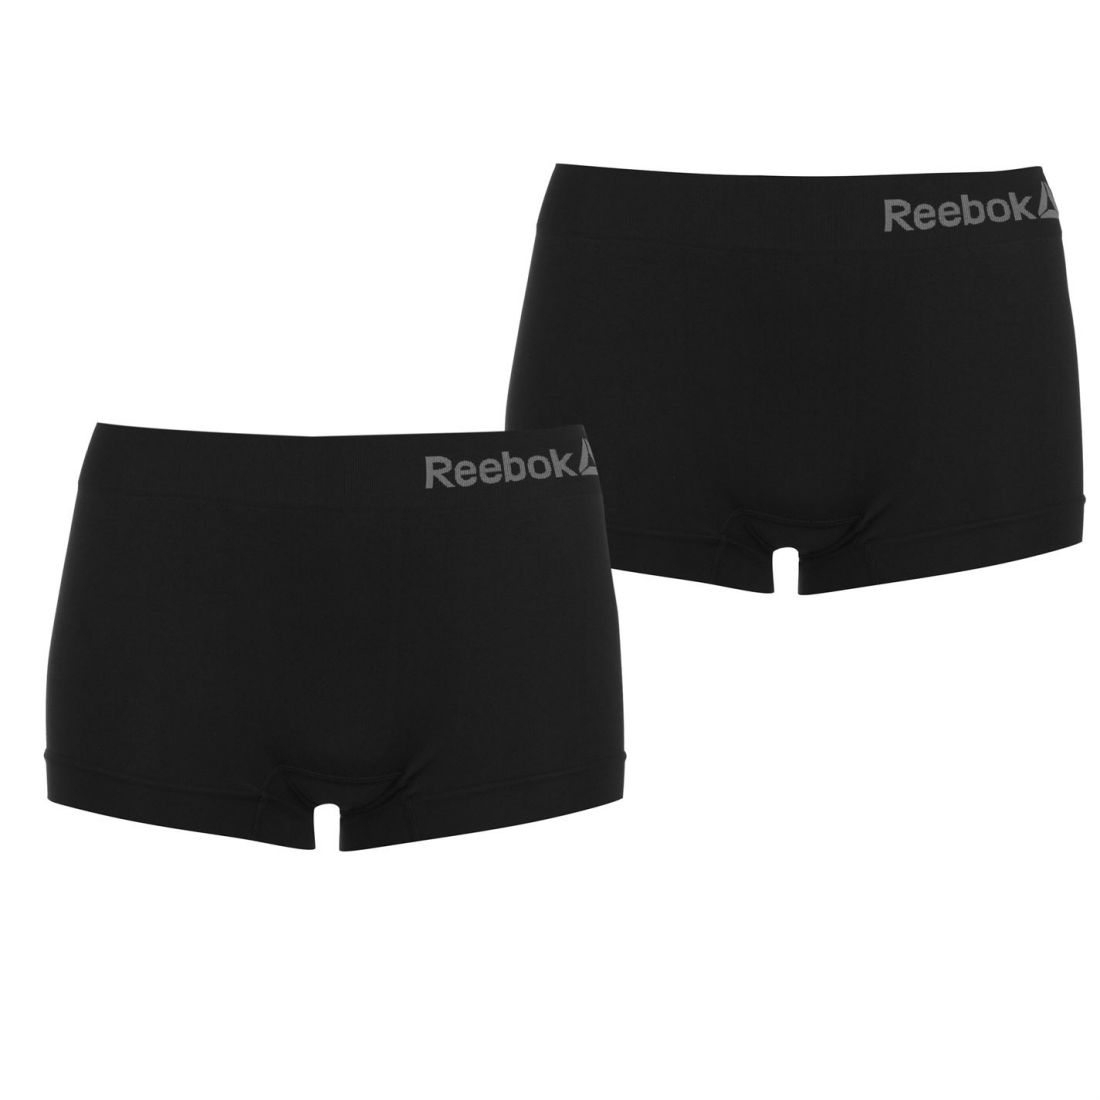 401d0f75a828 Reebok Womens Shorts Pack of 2 Underwear Seamless Stretch ...